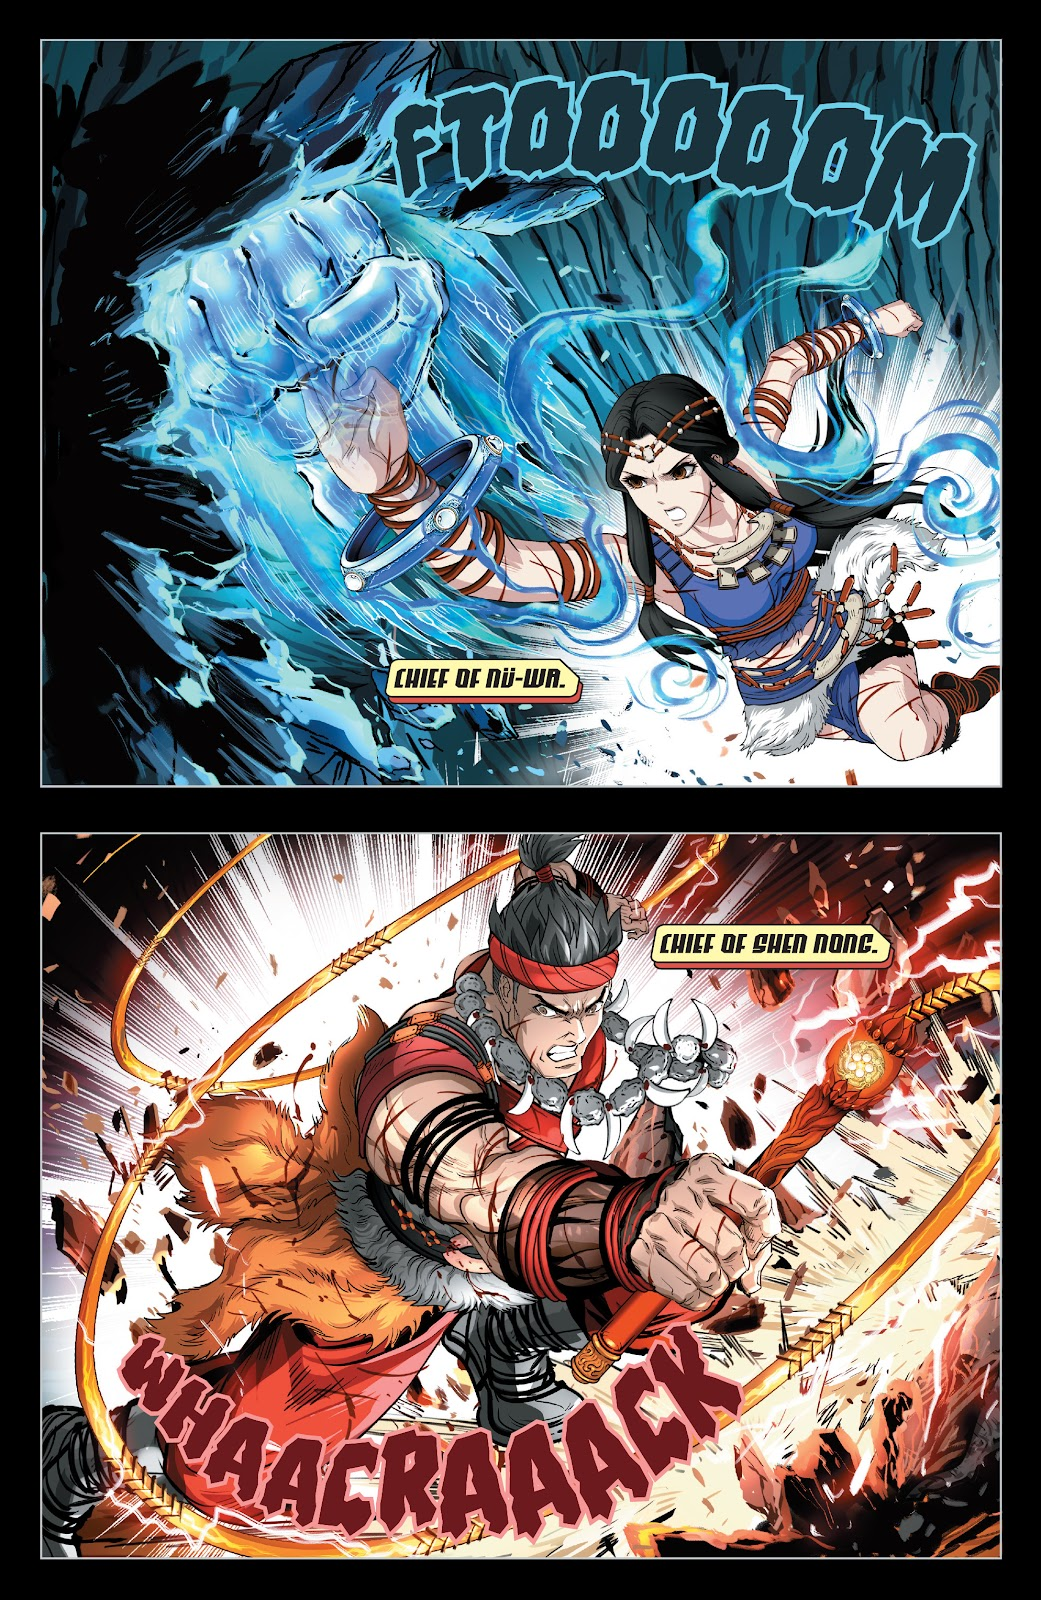 Read online Sword Master comic -  Issue #4 - 11